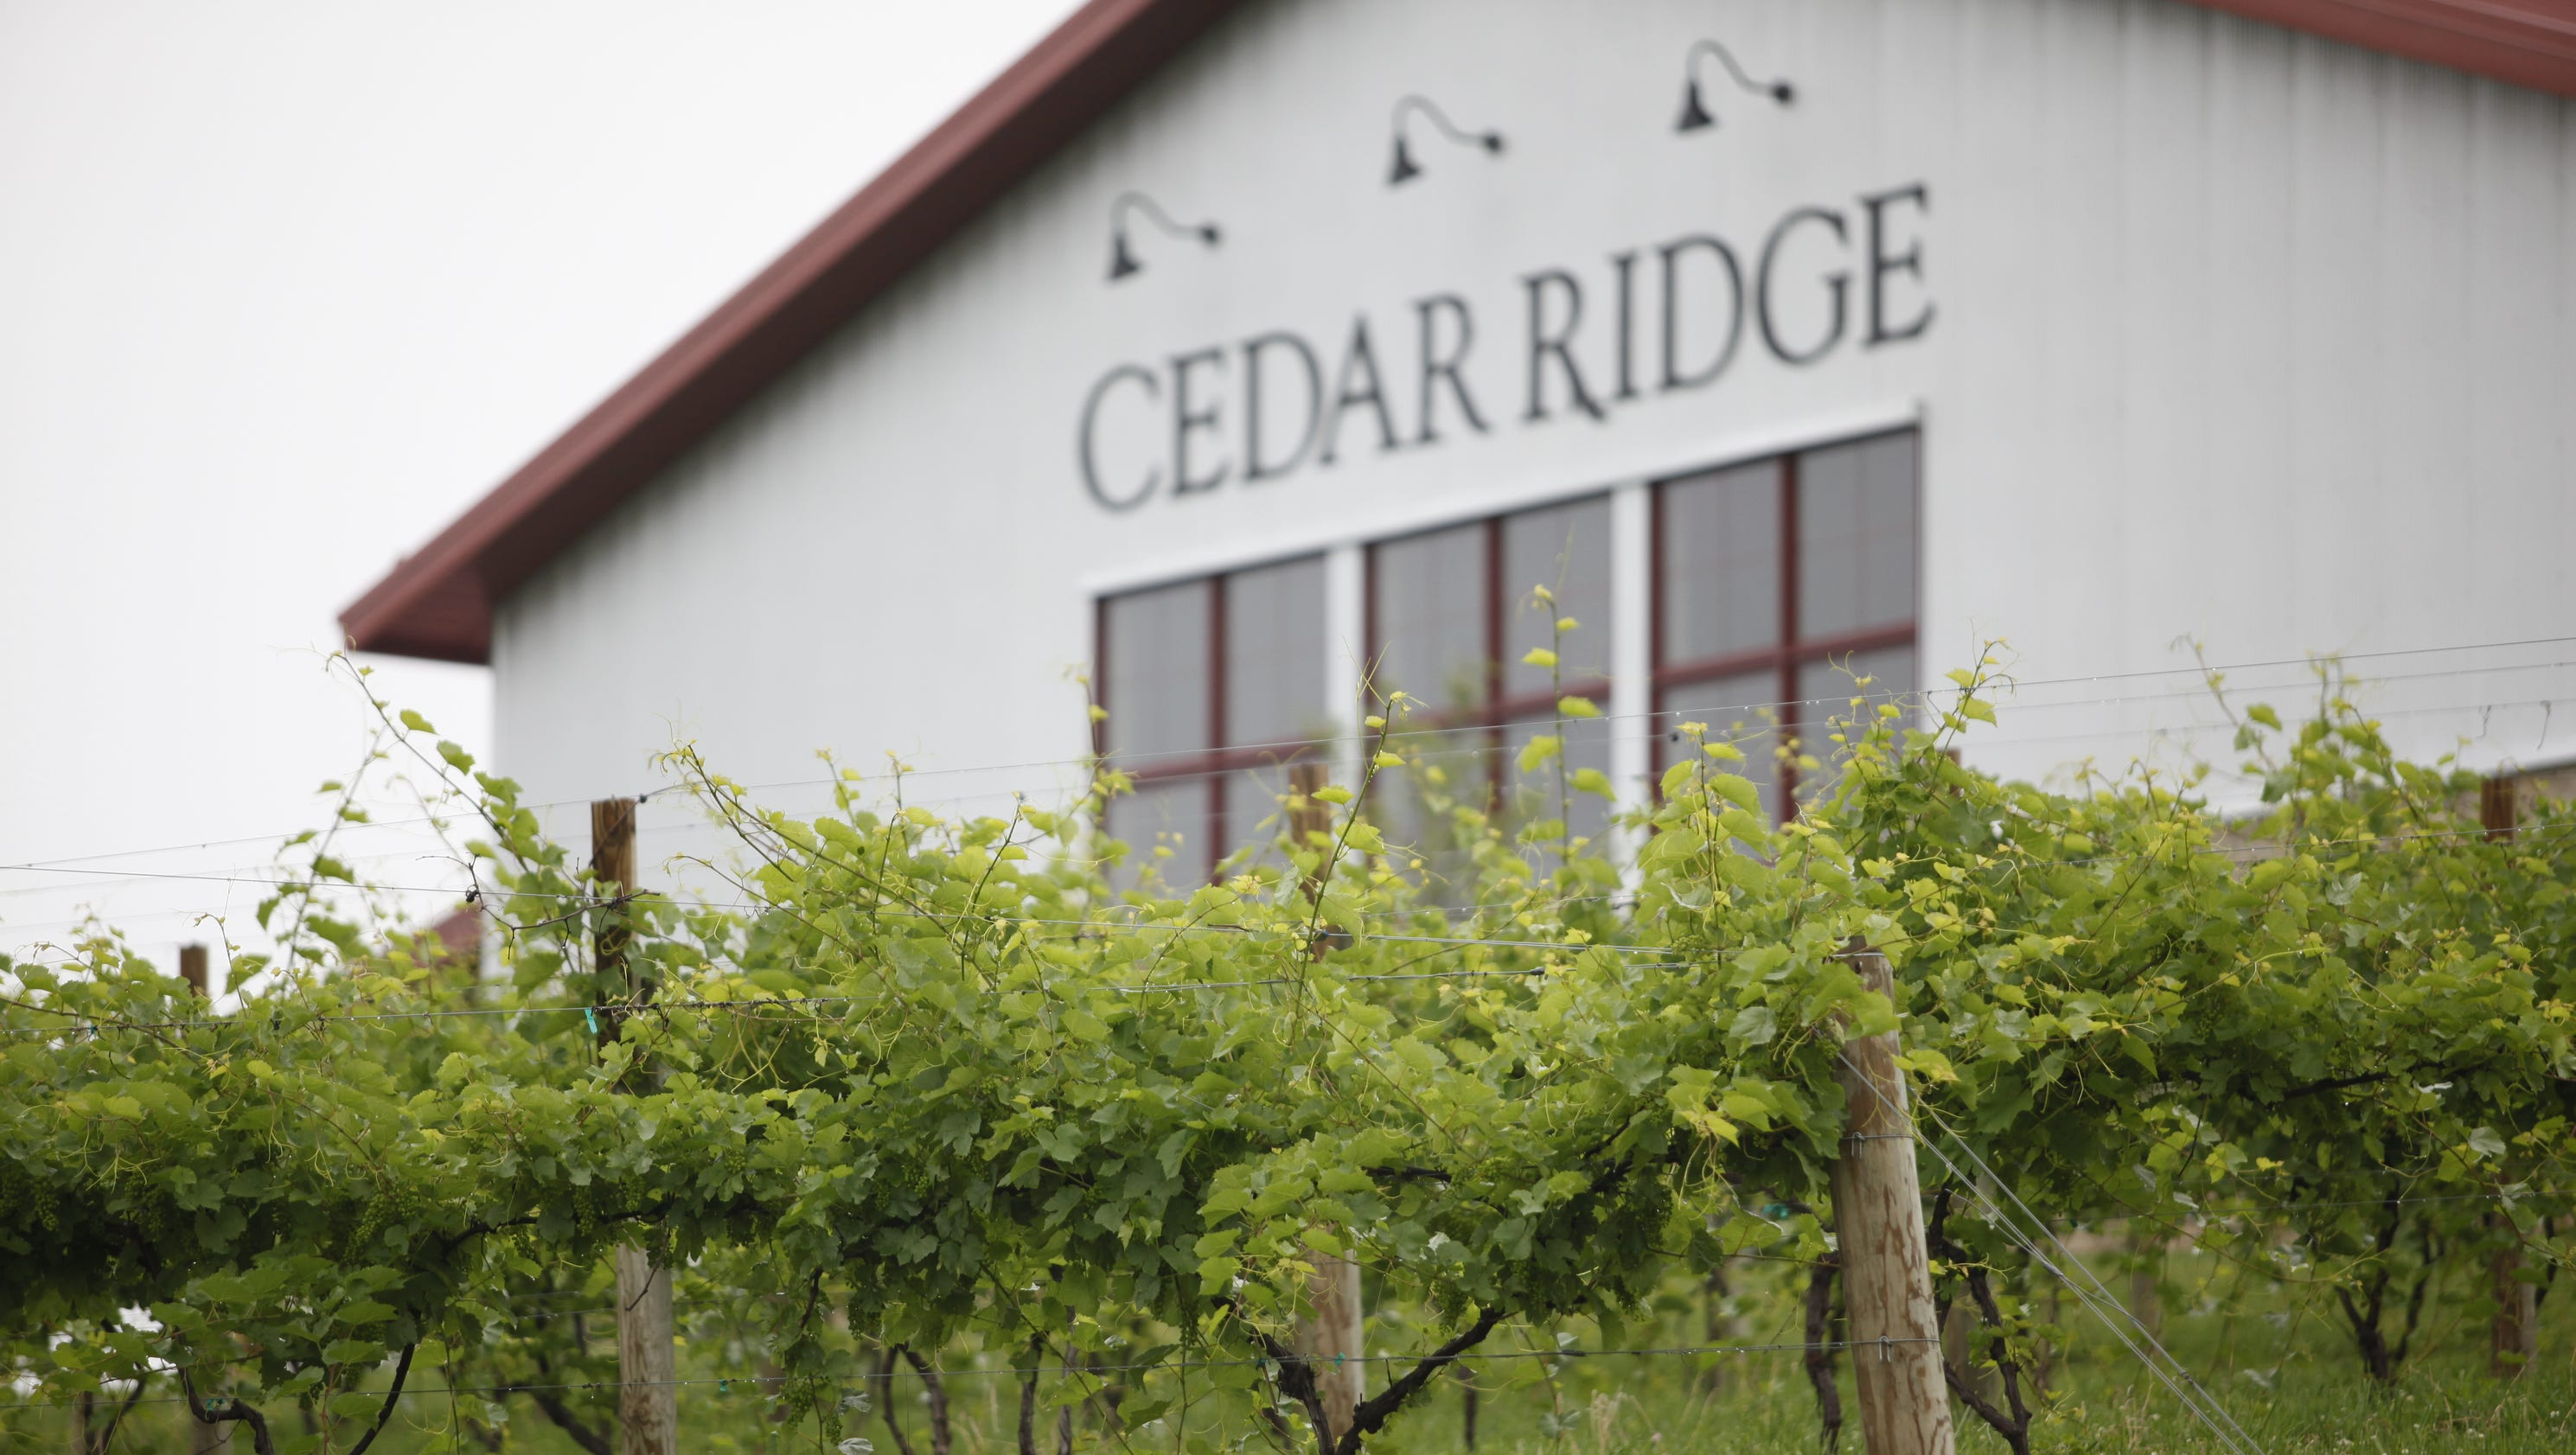 cedar ridge chat Cedar ridge soaps offers handcrafted soaps and body productsnaturally gentle, naturally inspired.